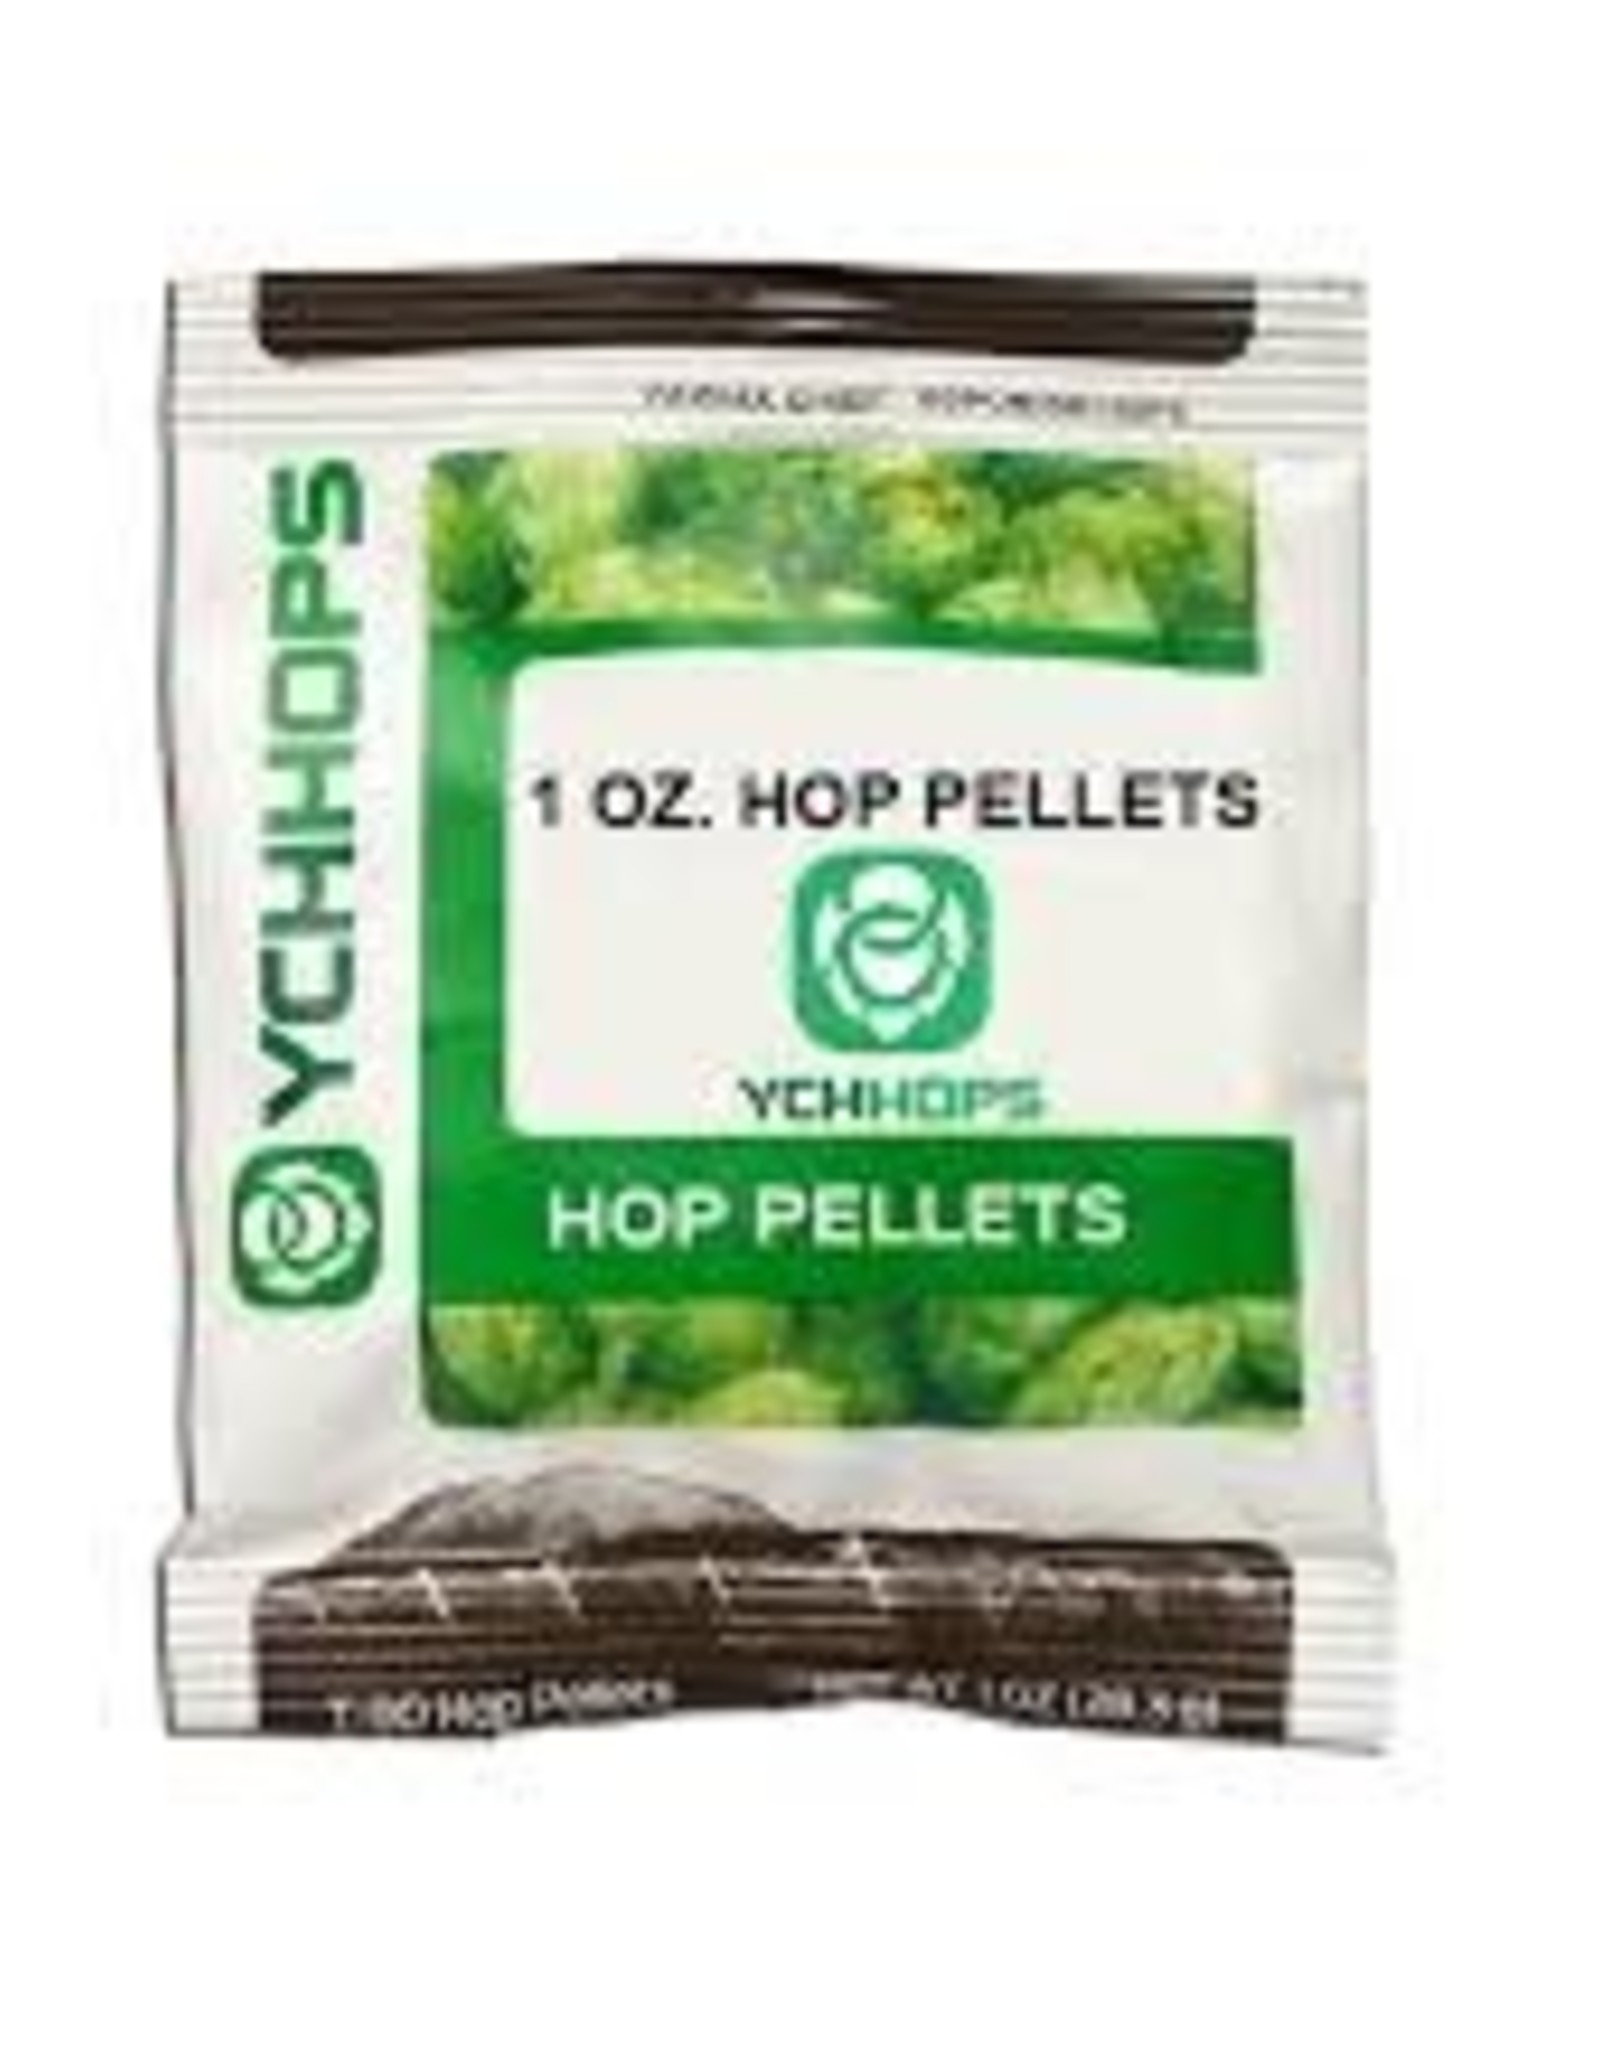 MT HOOD HOP PELLETS 1 OZ